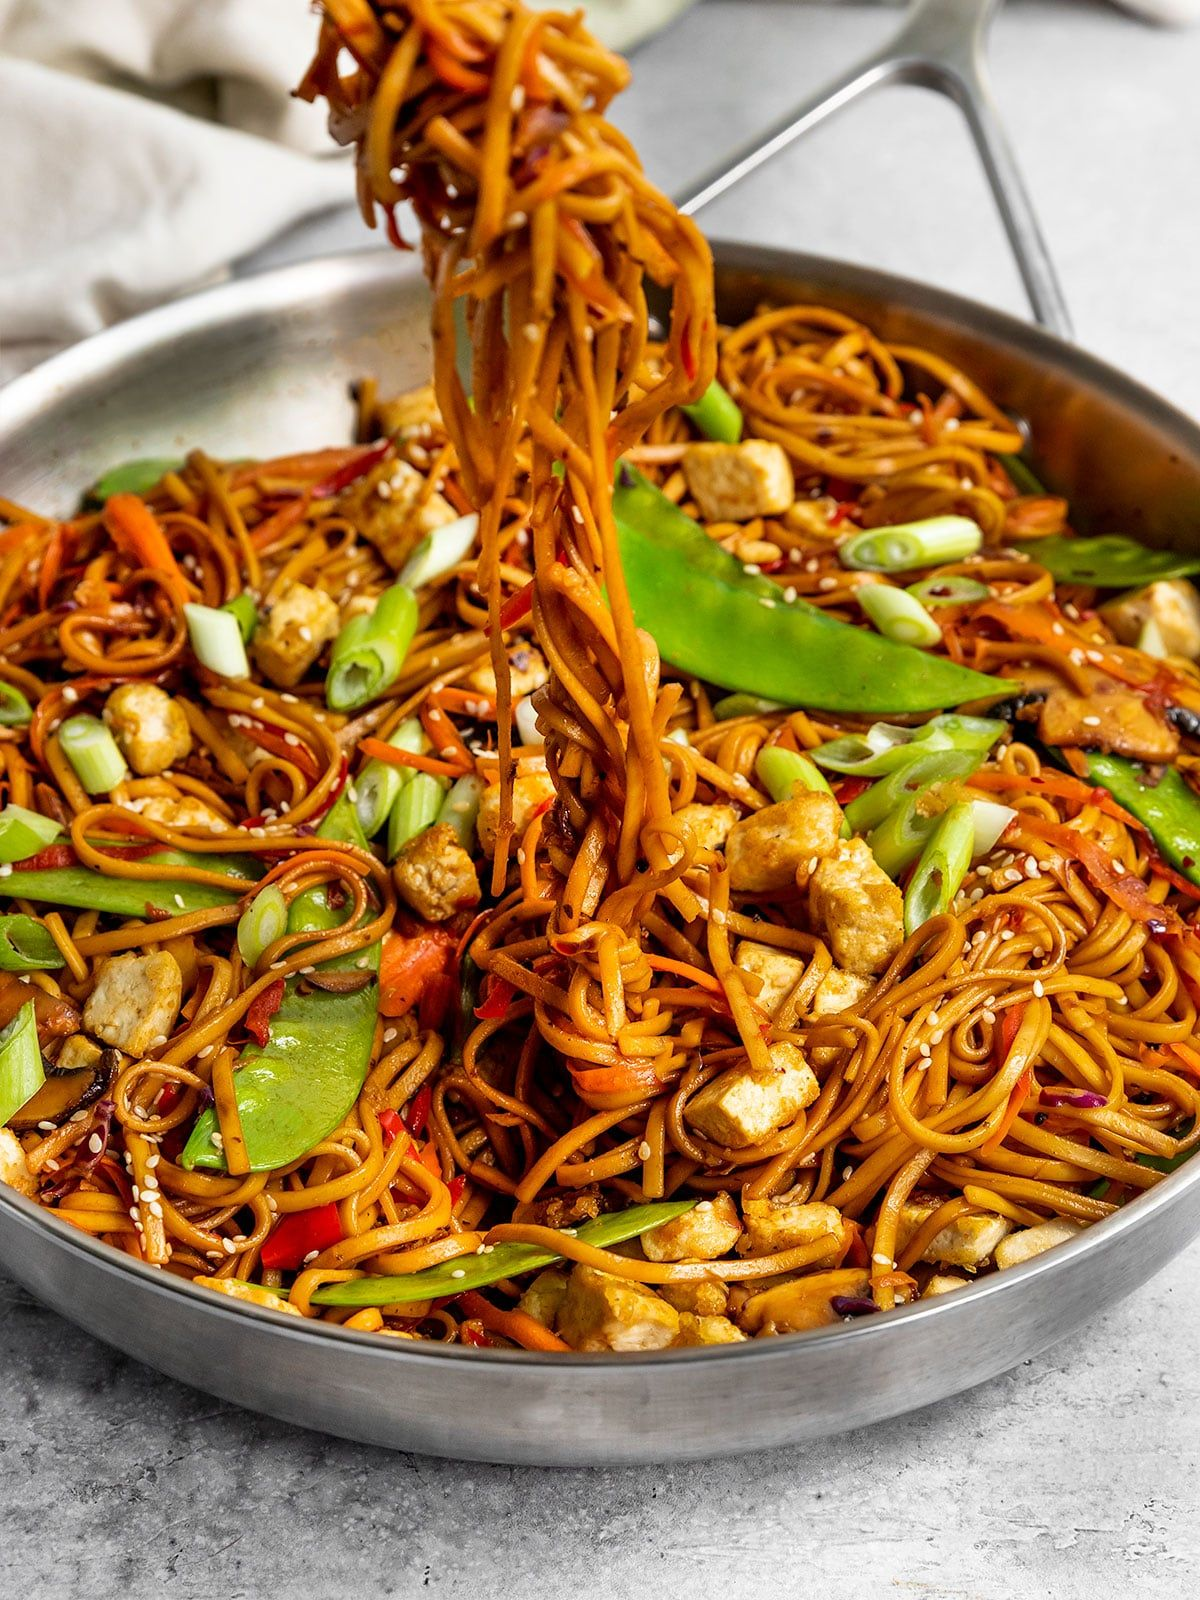 Vegan Vegetable Lo Mein with Tofu